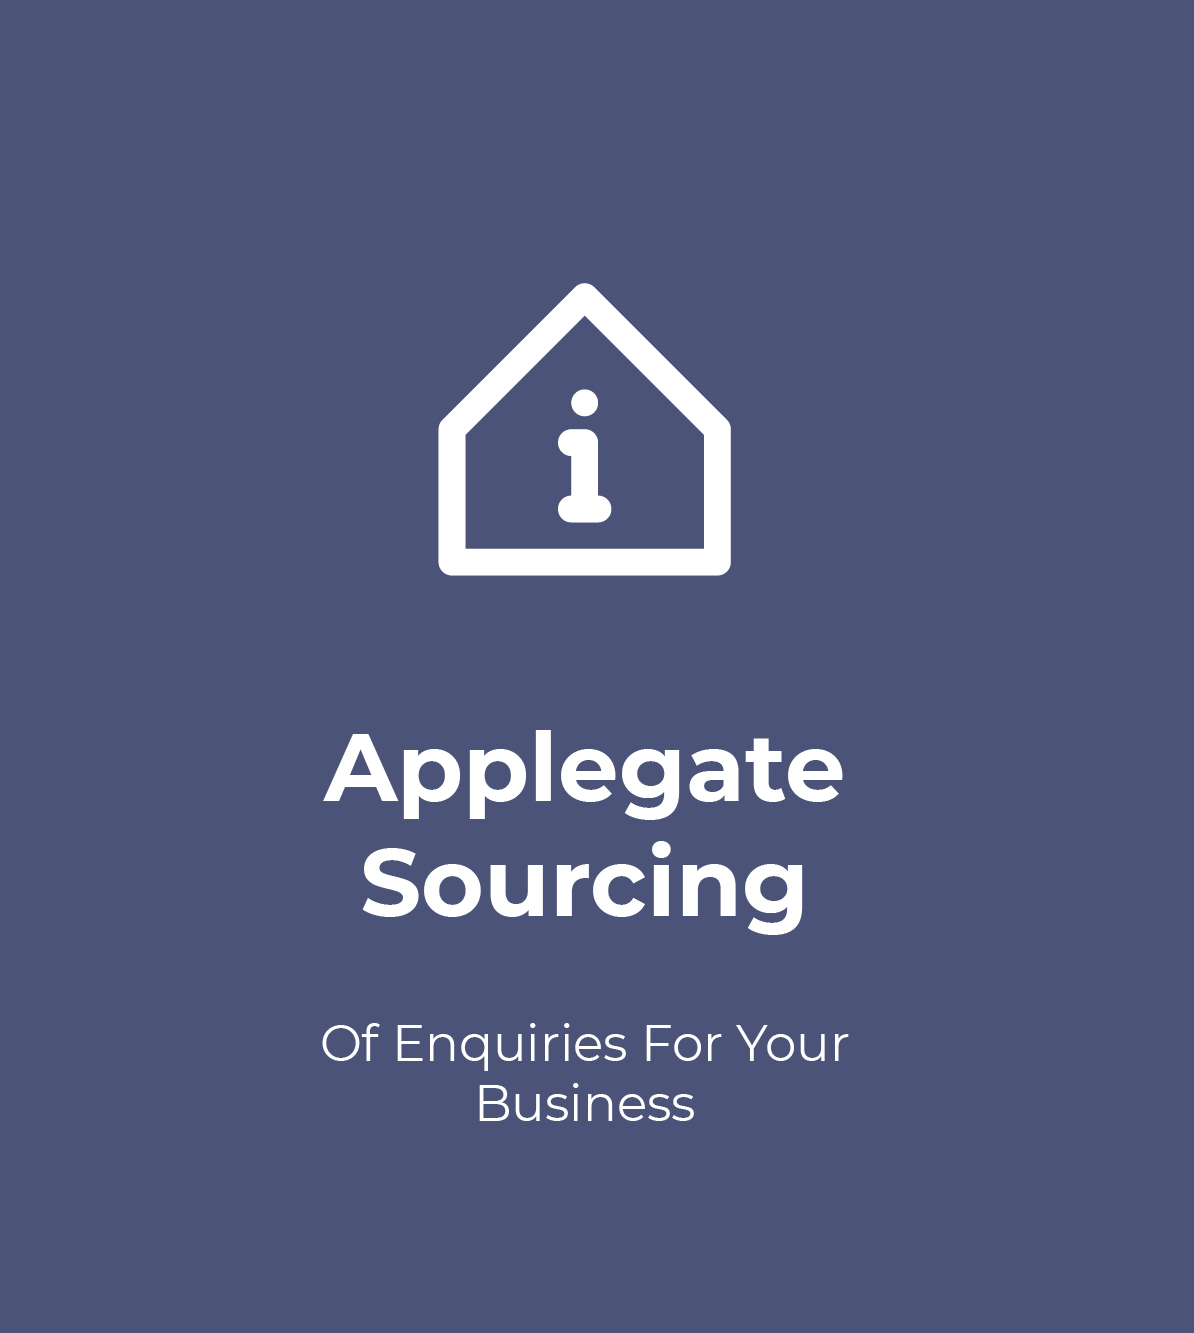 Applegate Enquiry Sourcing